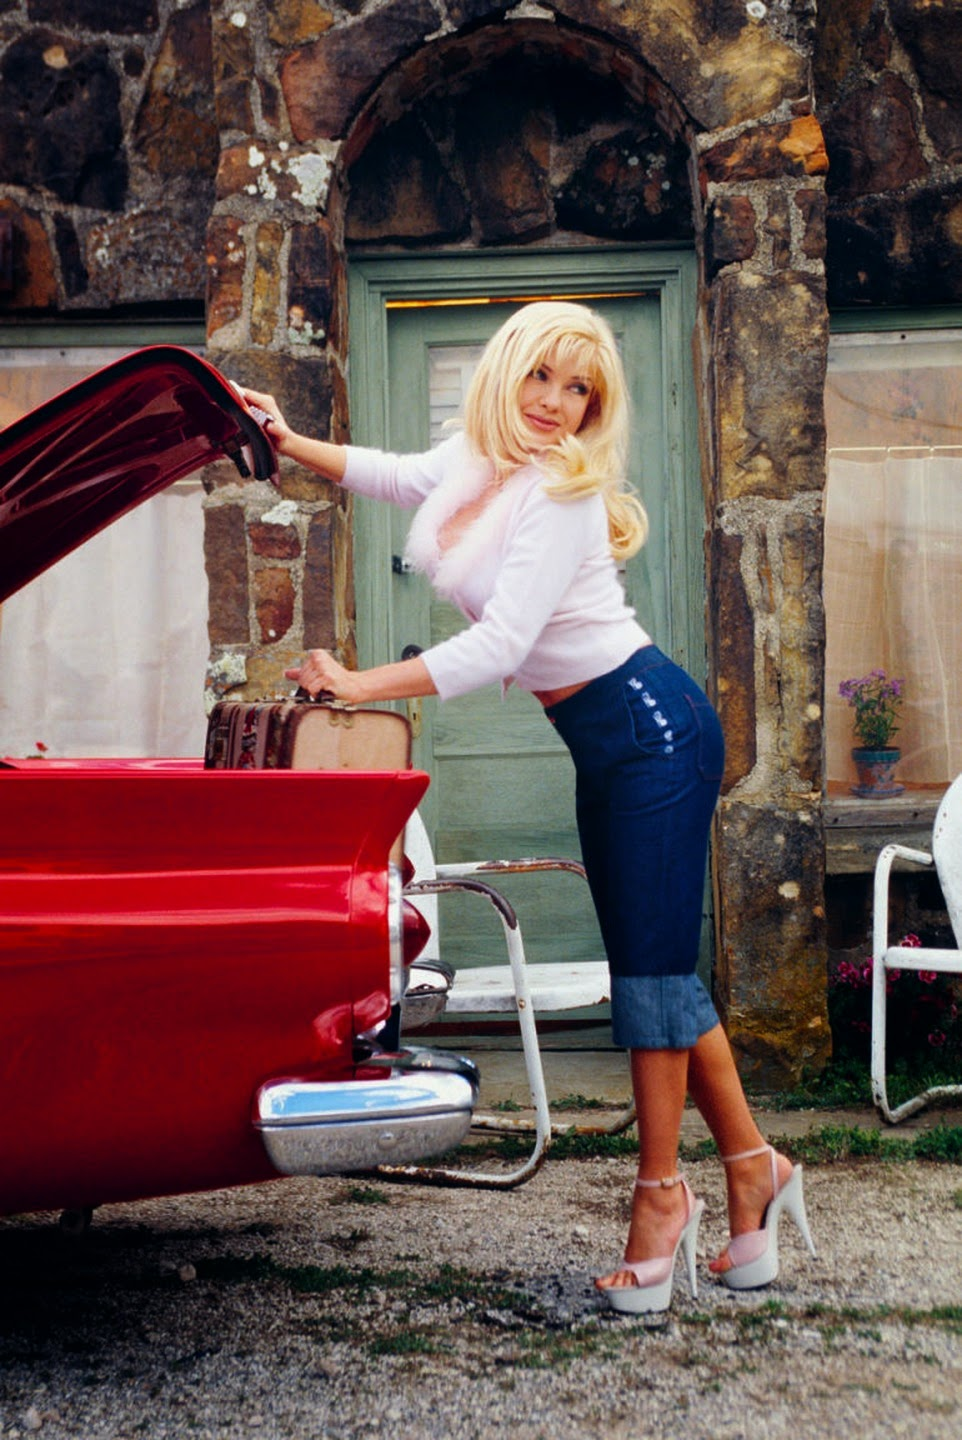 angela little   miss august 1998   vintage classic cars